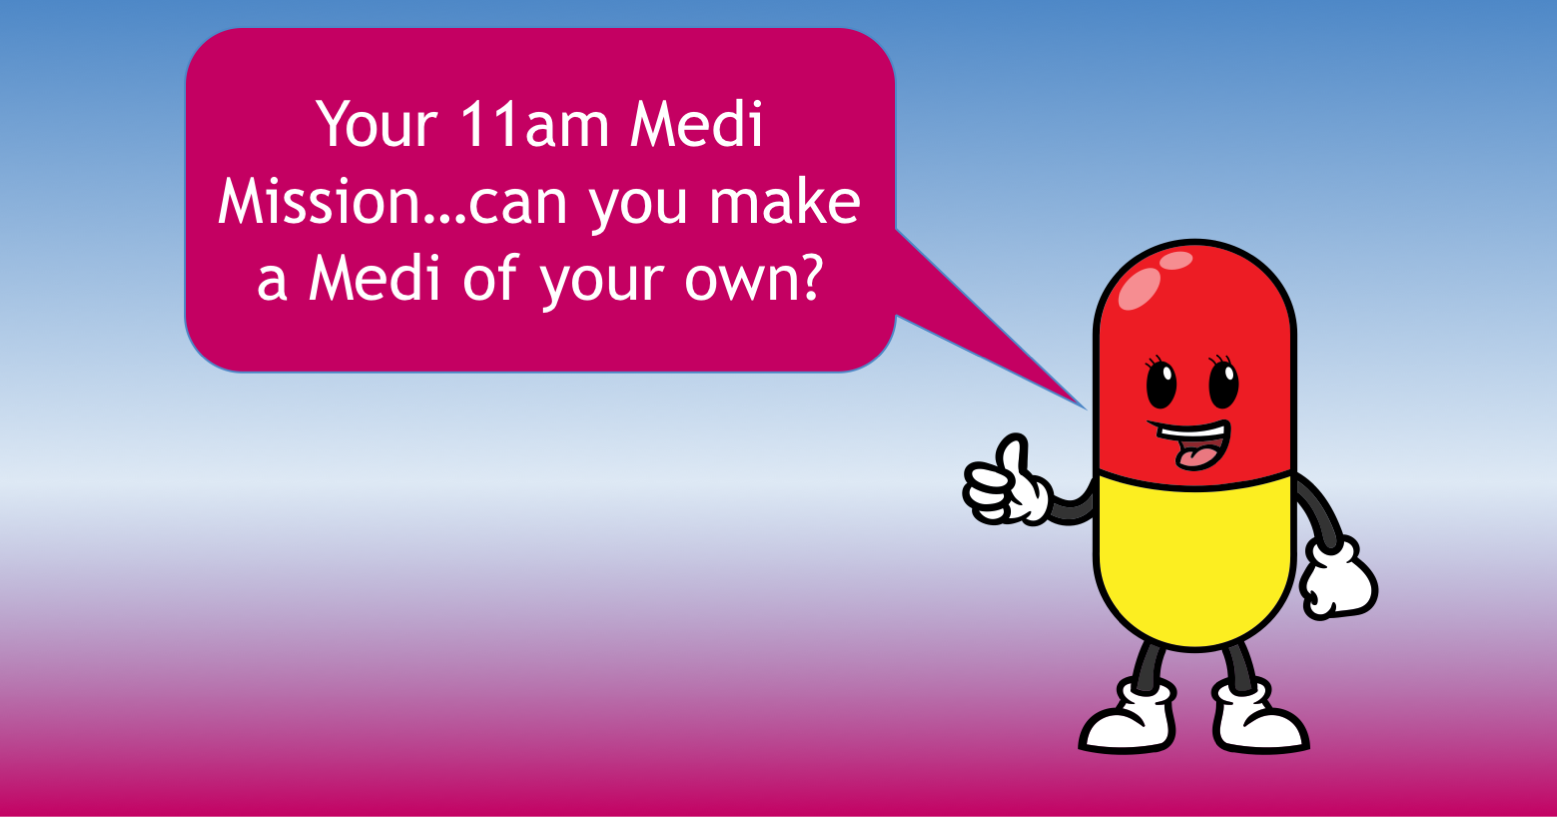 Medi introduces your Saturday 11am mission, to make your own mini-Medi